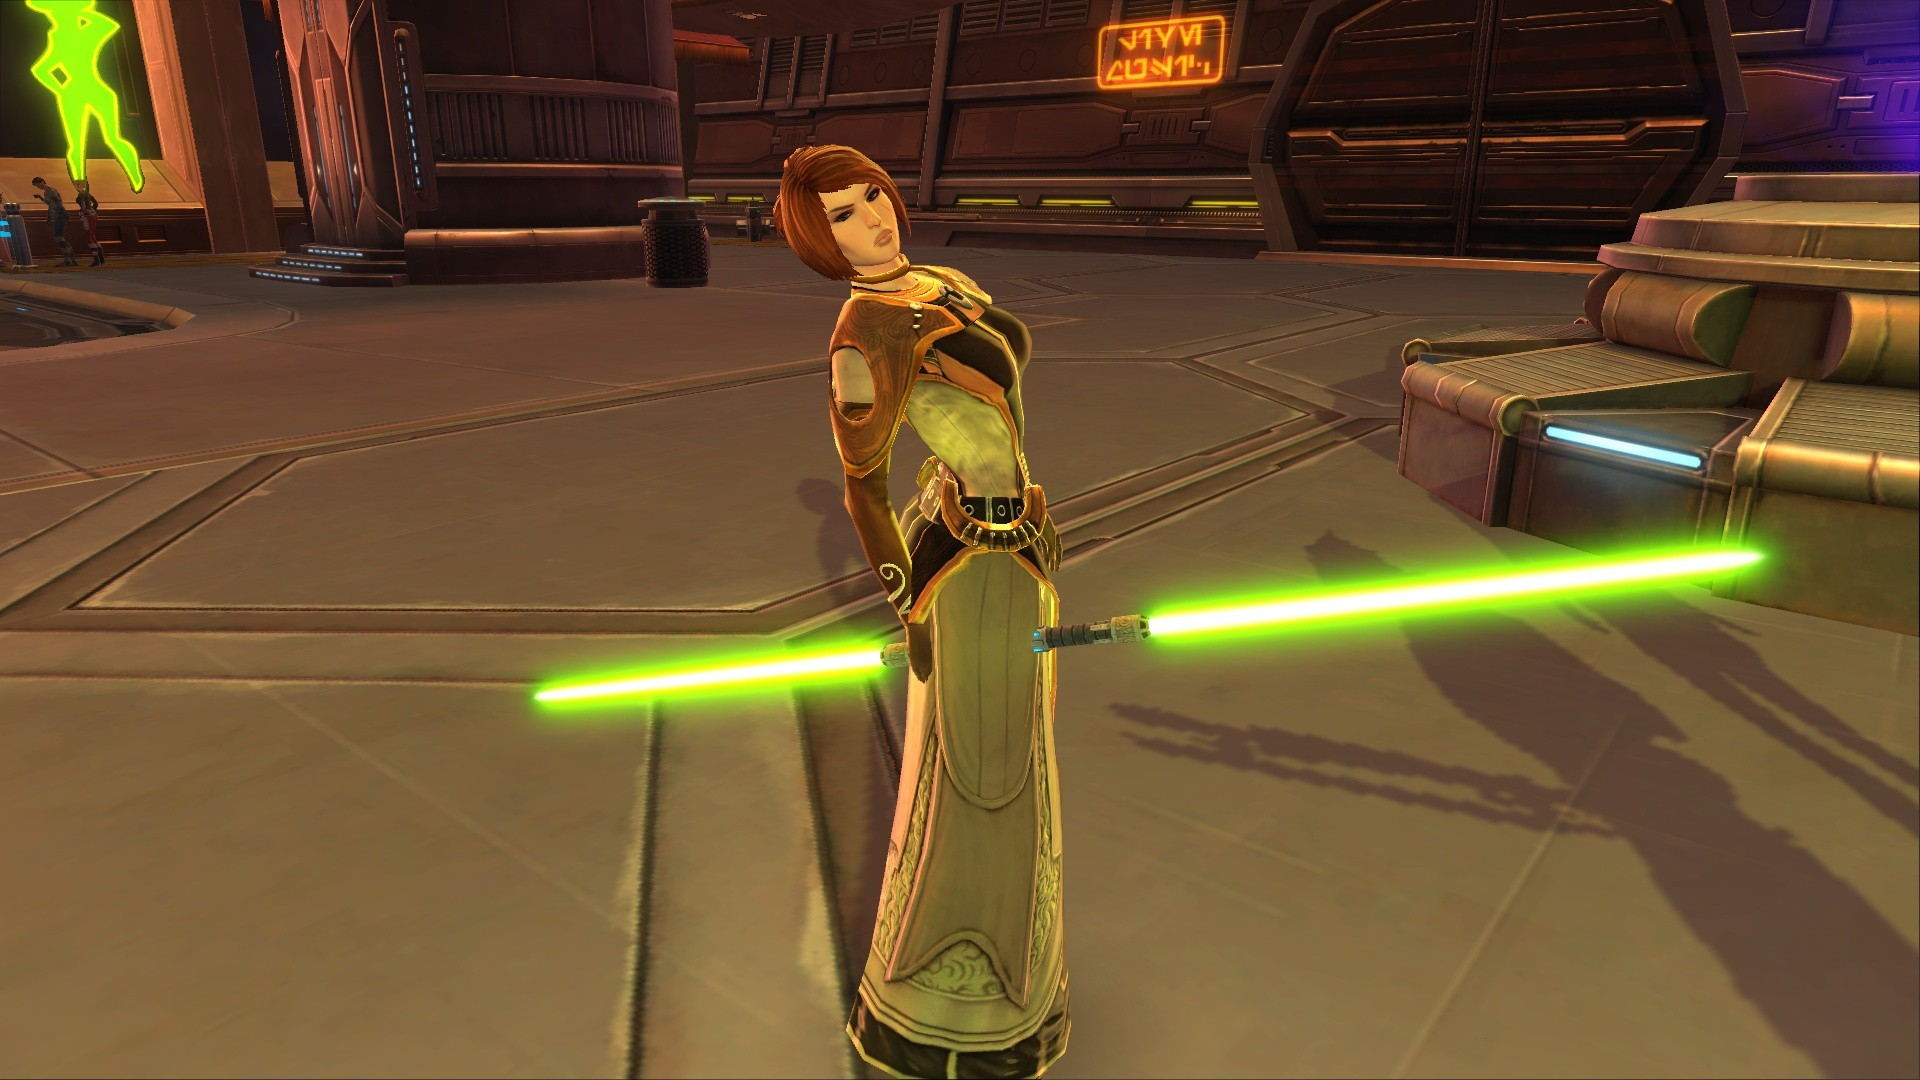 Star Wars: The Old Republic - what a sick game